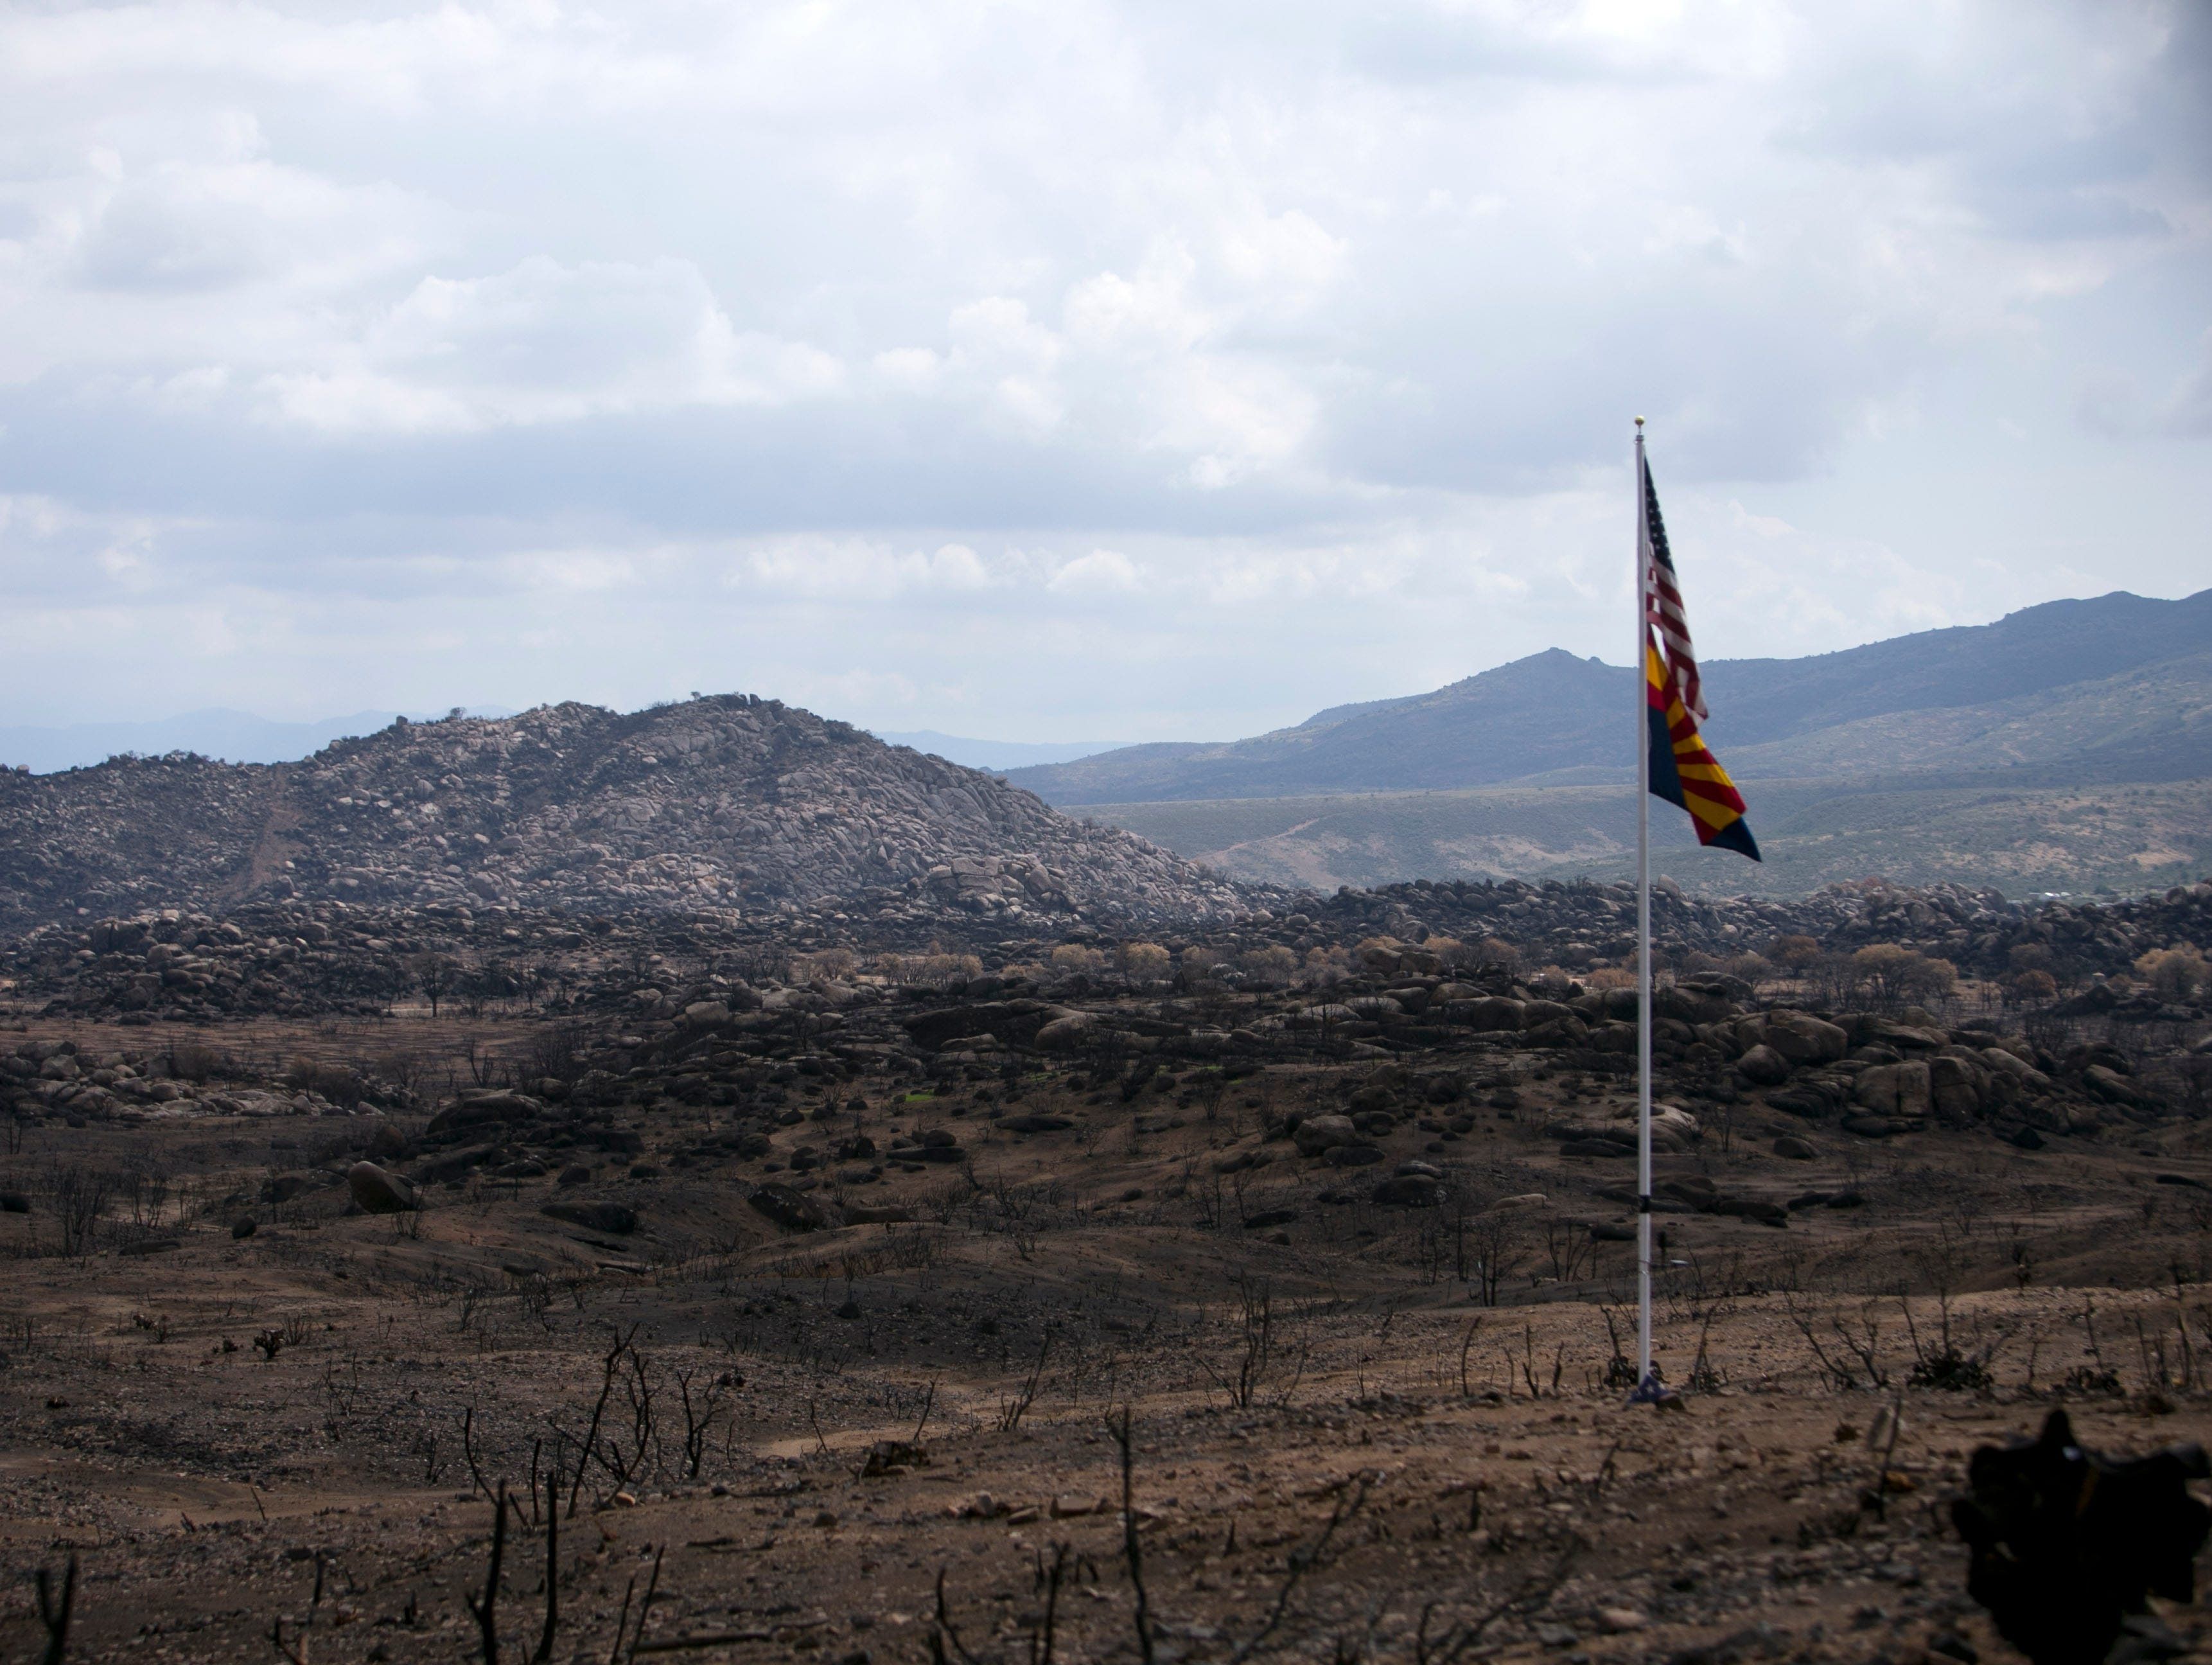 Yarnell Hill fire site where hotshots died